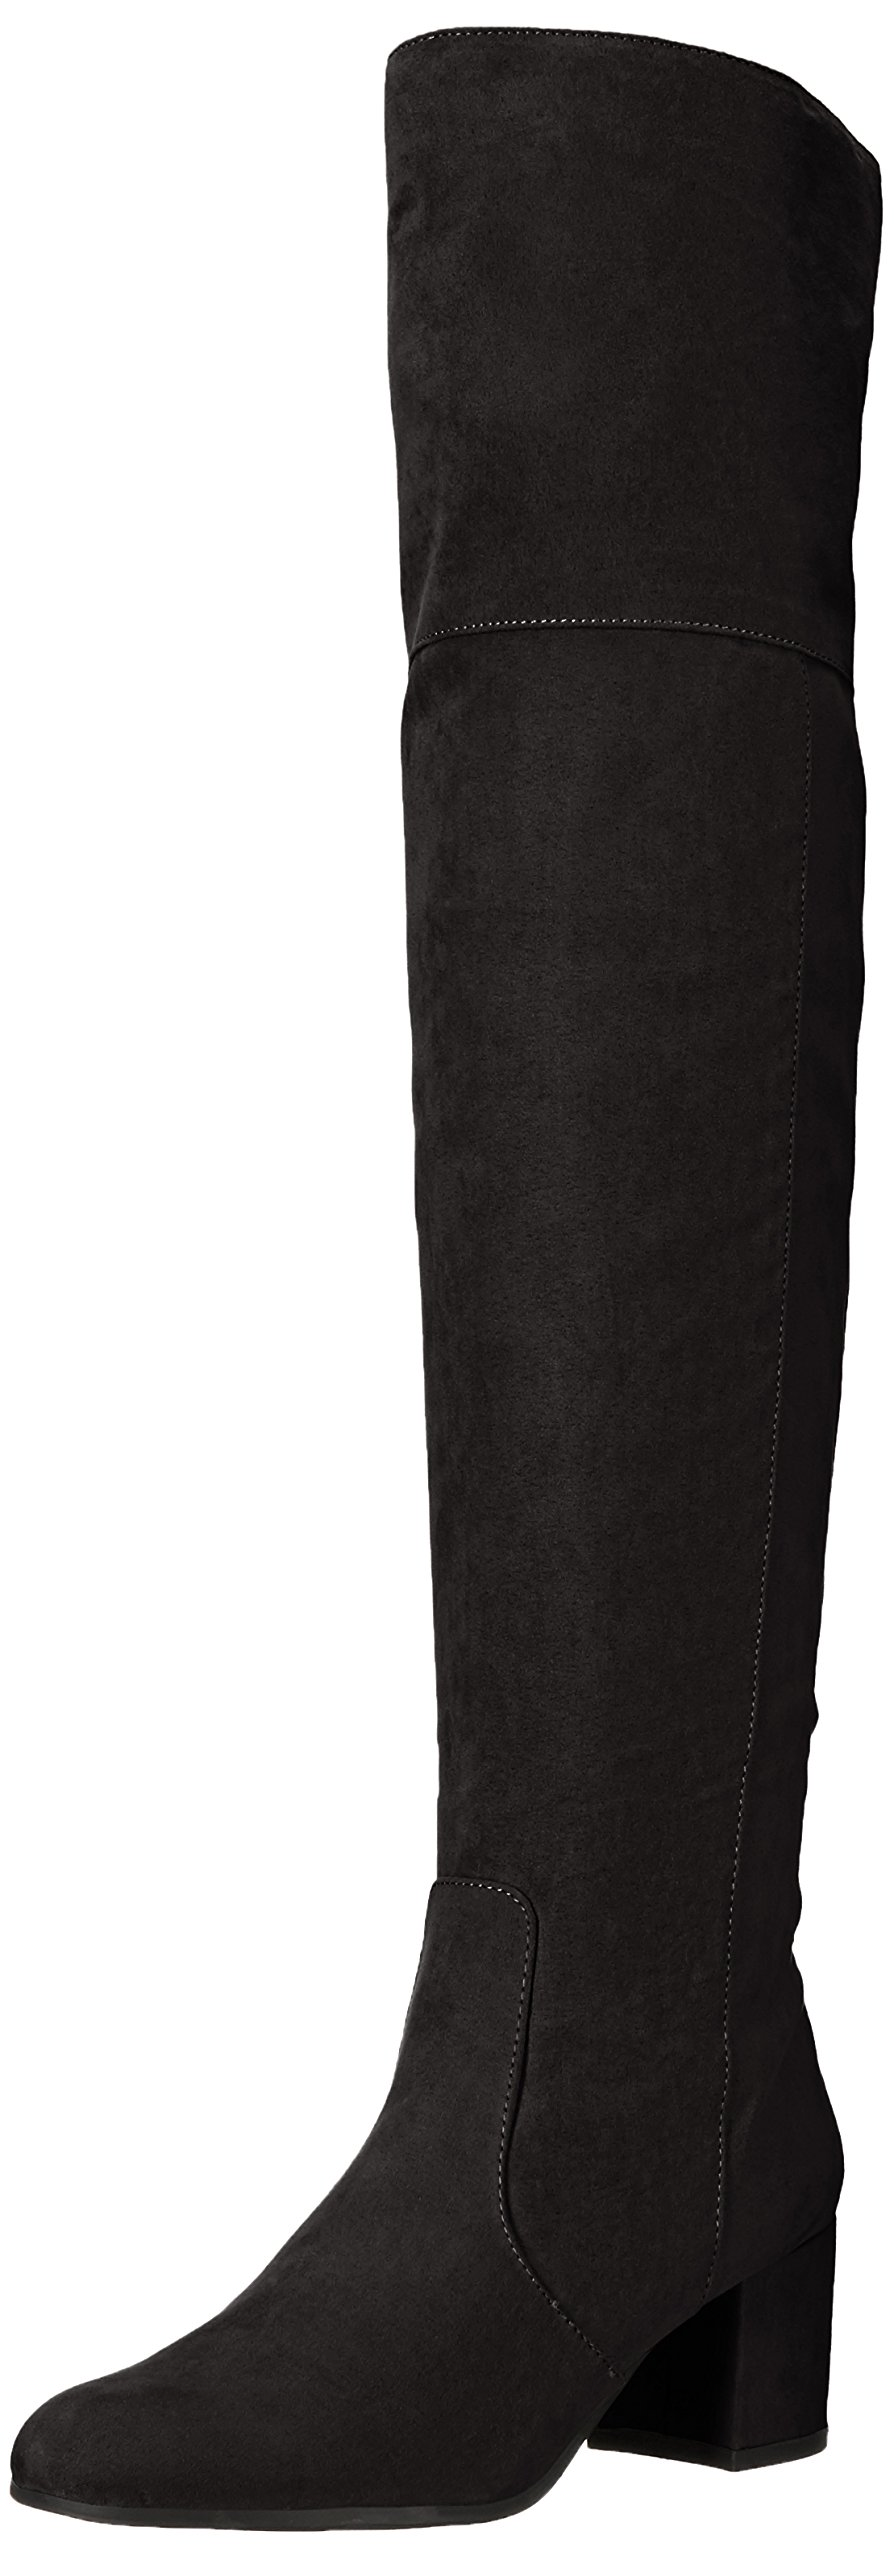 Circus by Sam Edelman Women's Vivica Over The Knee Boot, Black, 6.5 Medium US